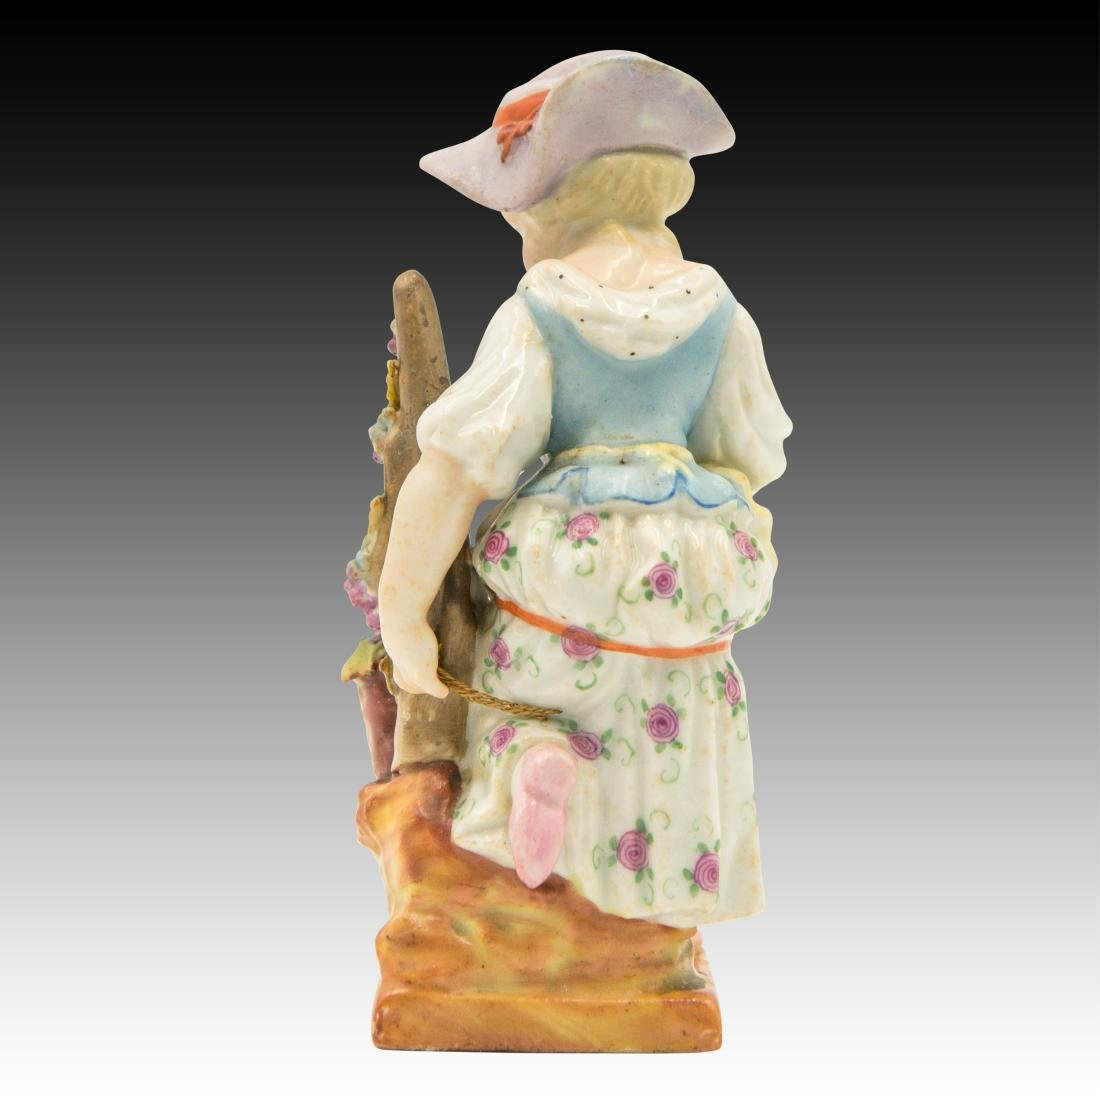 Small Figurine of a Young Girl with Flowers - 3